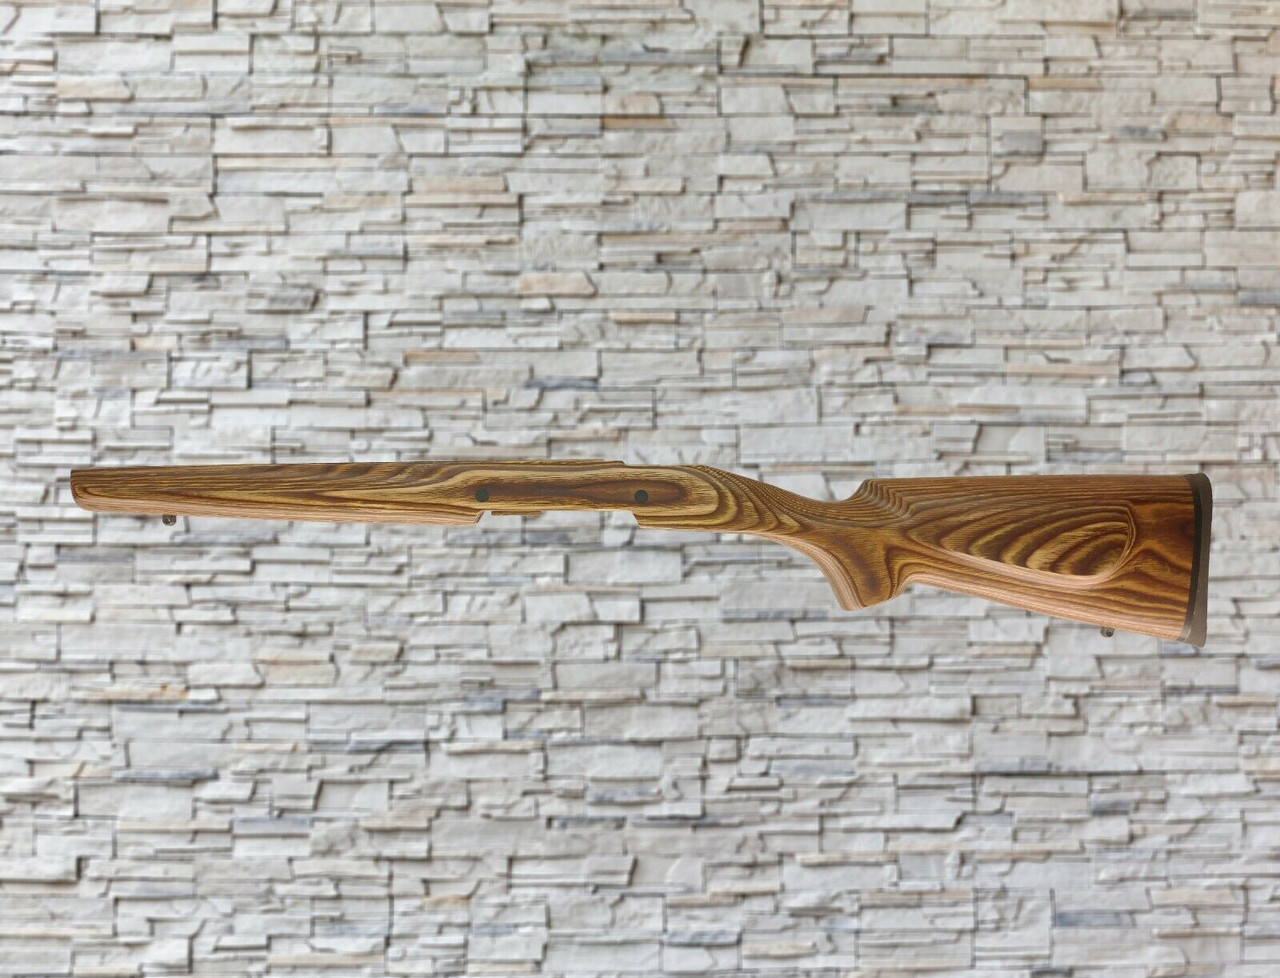 Boyds Classic Nutmeg Stock Browning X-Bolt Short Action Factory Barrel Rifle